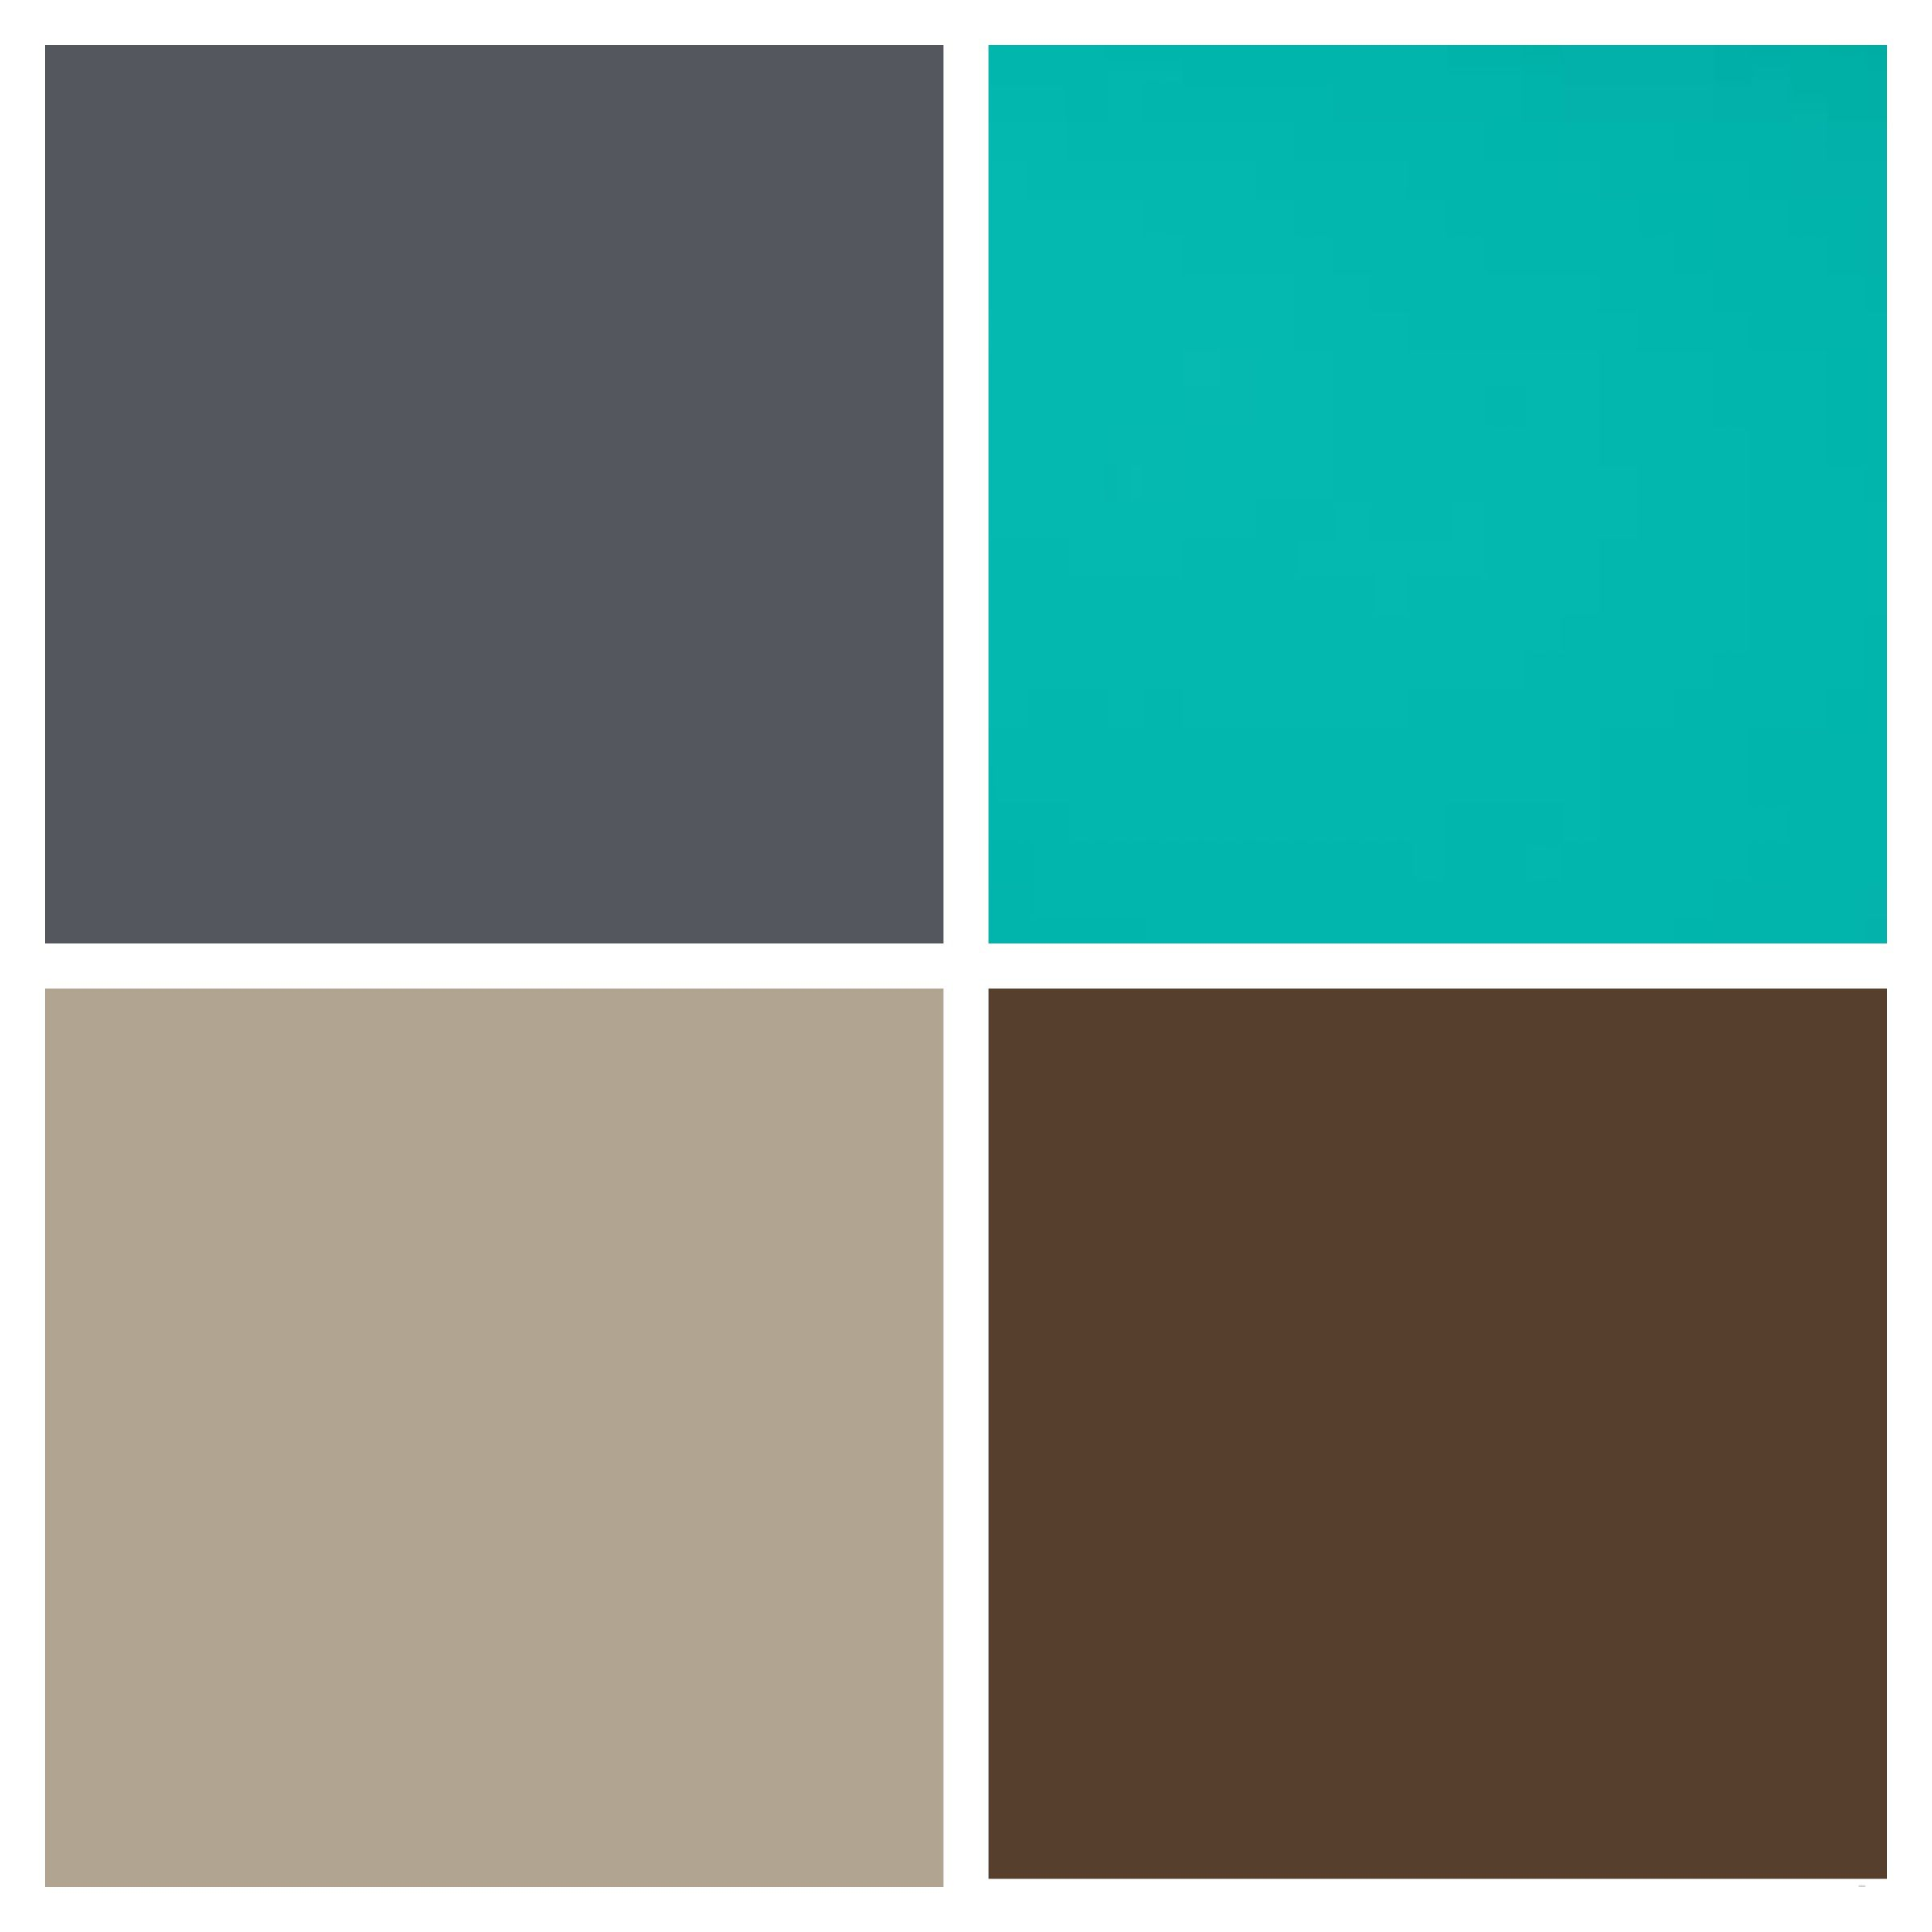 Bedroom color palette slate gray storm grey turquoise ocean